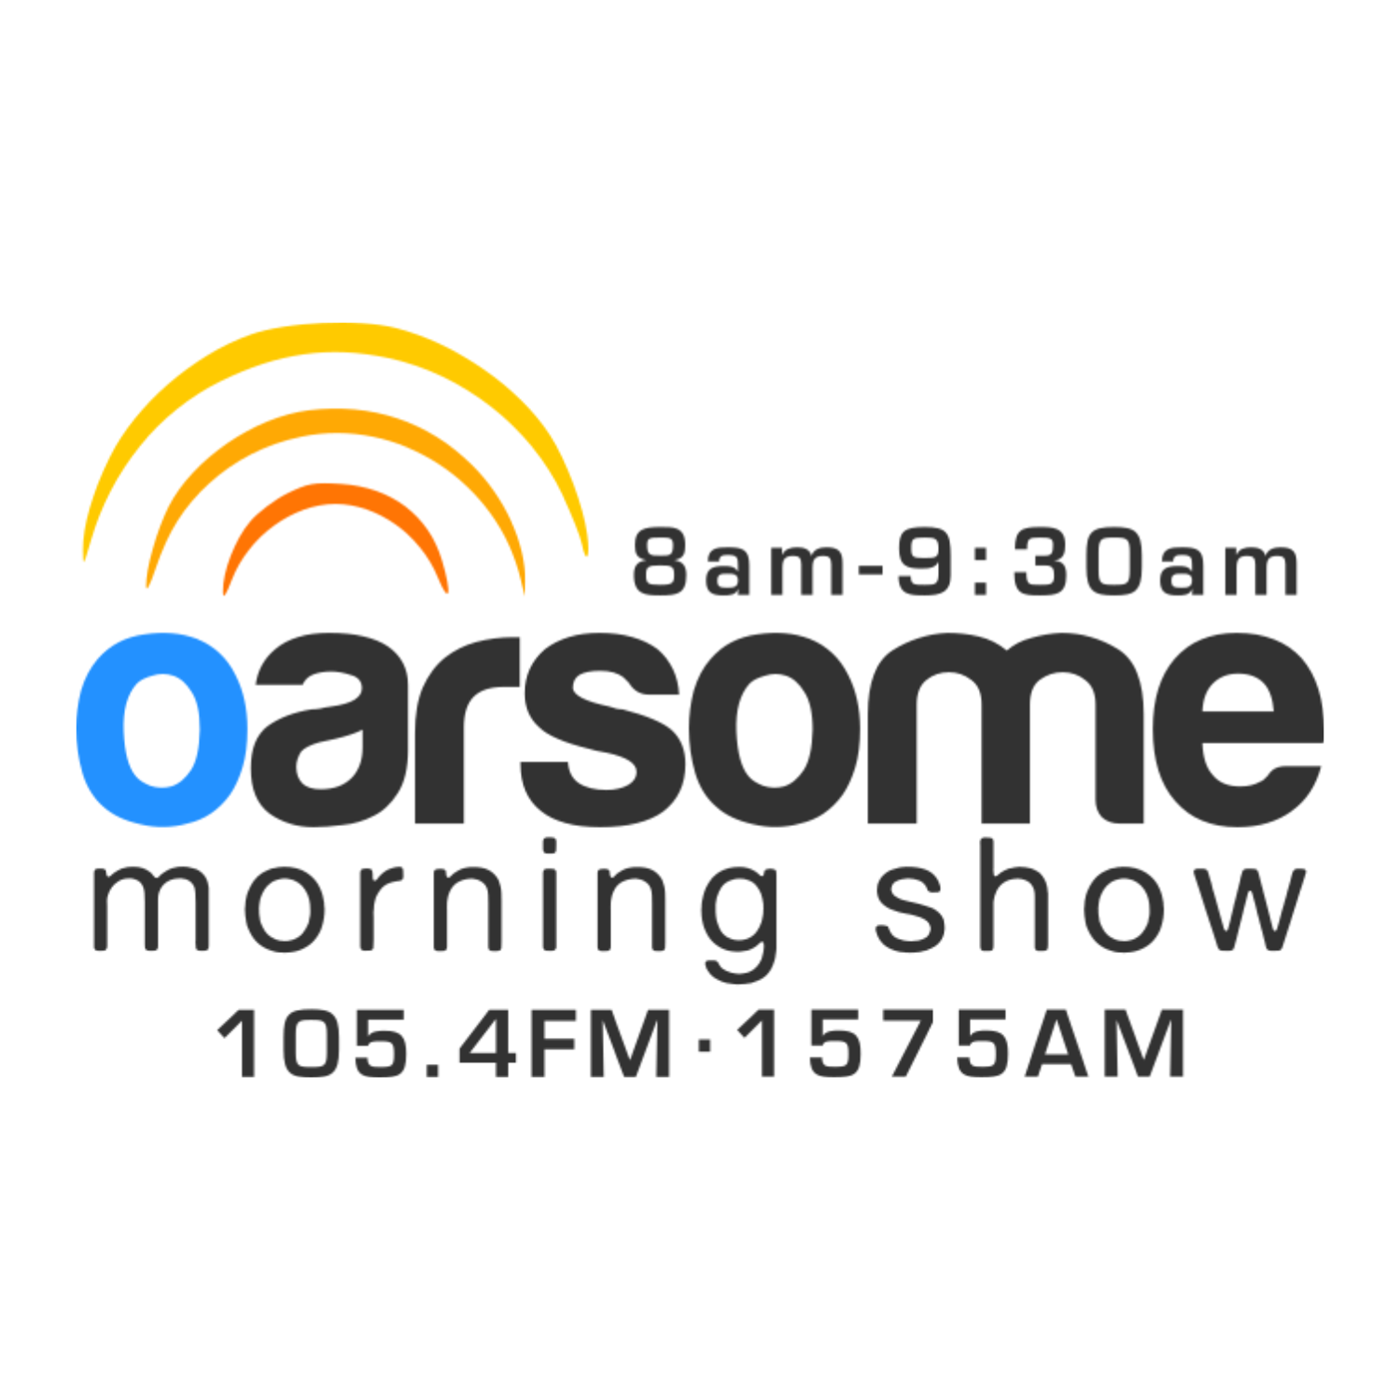 OARsome Morning Show - 22-08-2019 - Wonderful Winter Concert - Graham Wood